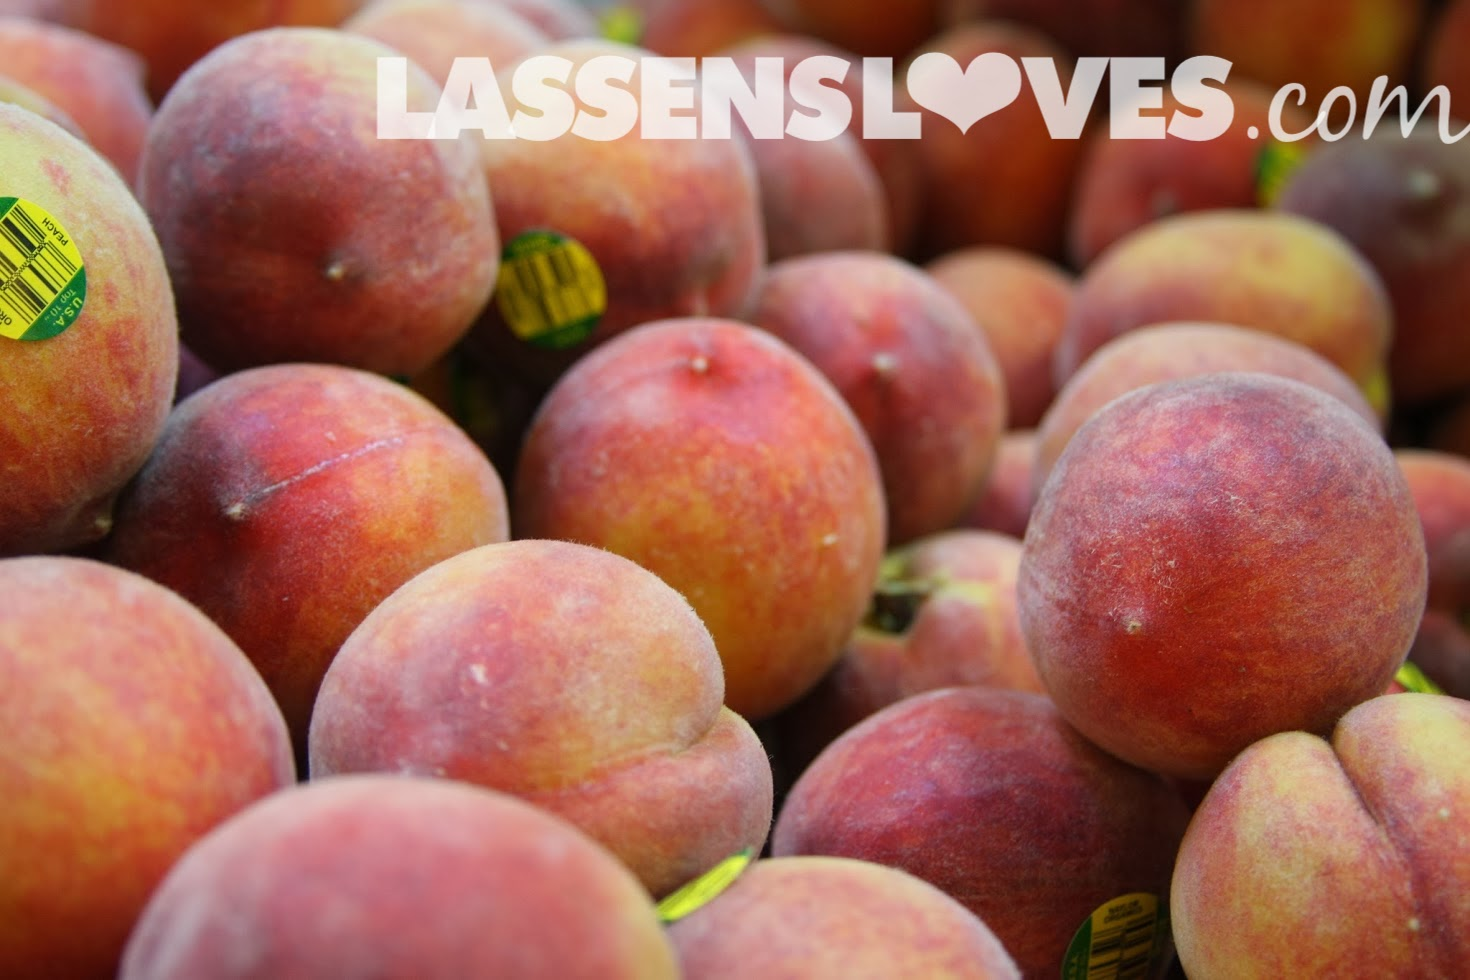 lassensloves.com, Lassen's, Lassens, organic+produce, why+eat+organic, peaches